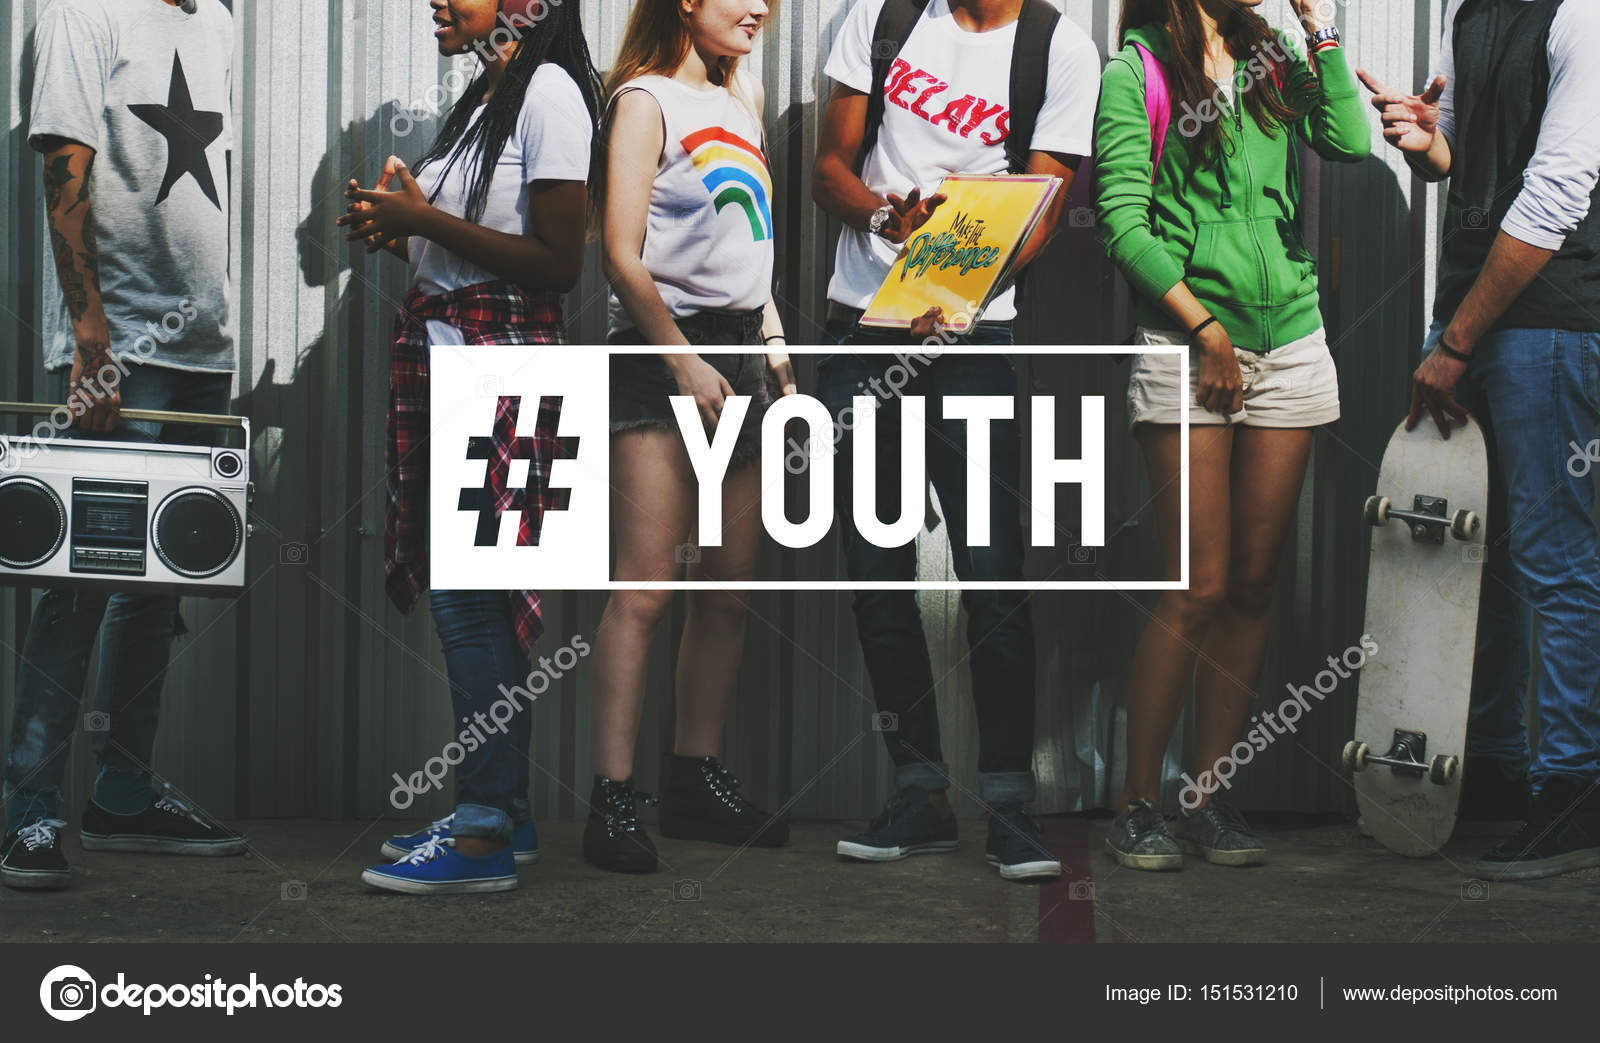 youth culture today The youth of today: clockwise, metallers, goth, molly soda, haul girl and seapunks essay on the youth culture of today ages ago, even before the advent of democracy, great masters all over the.